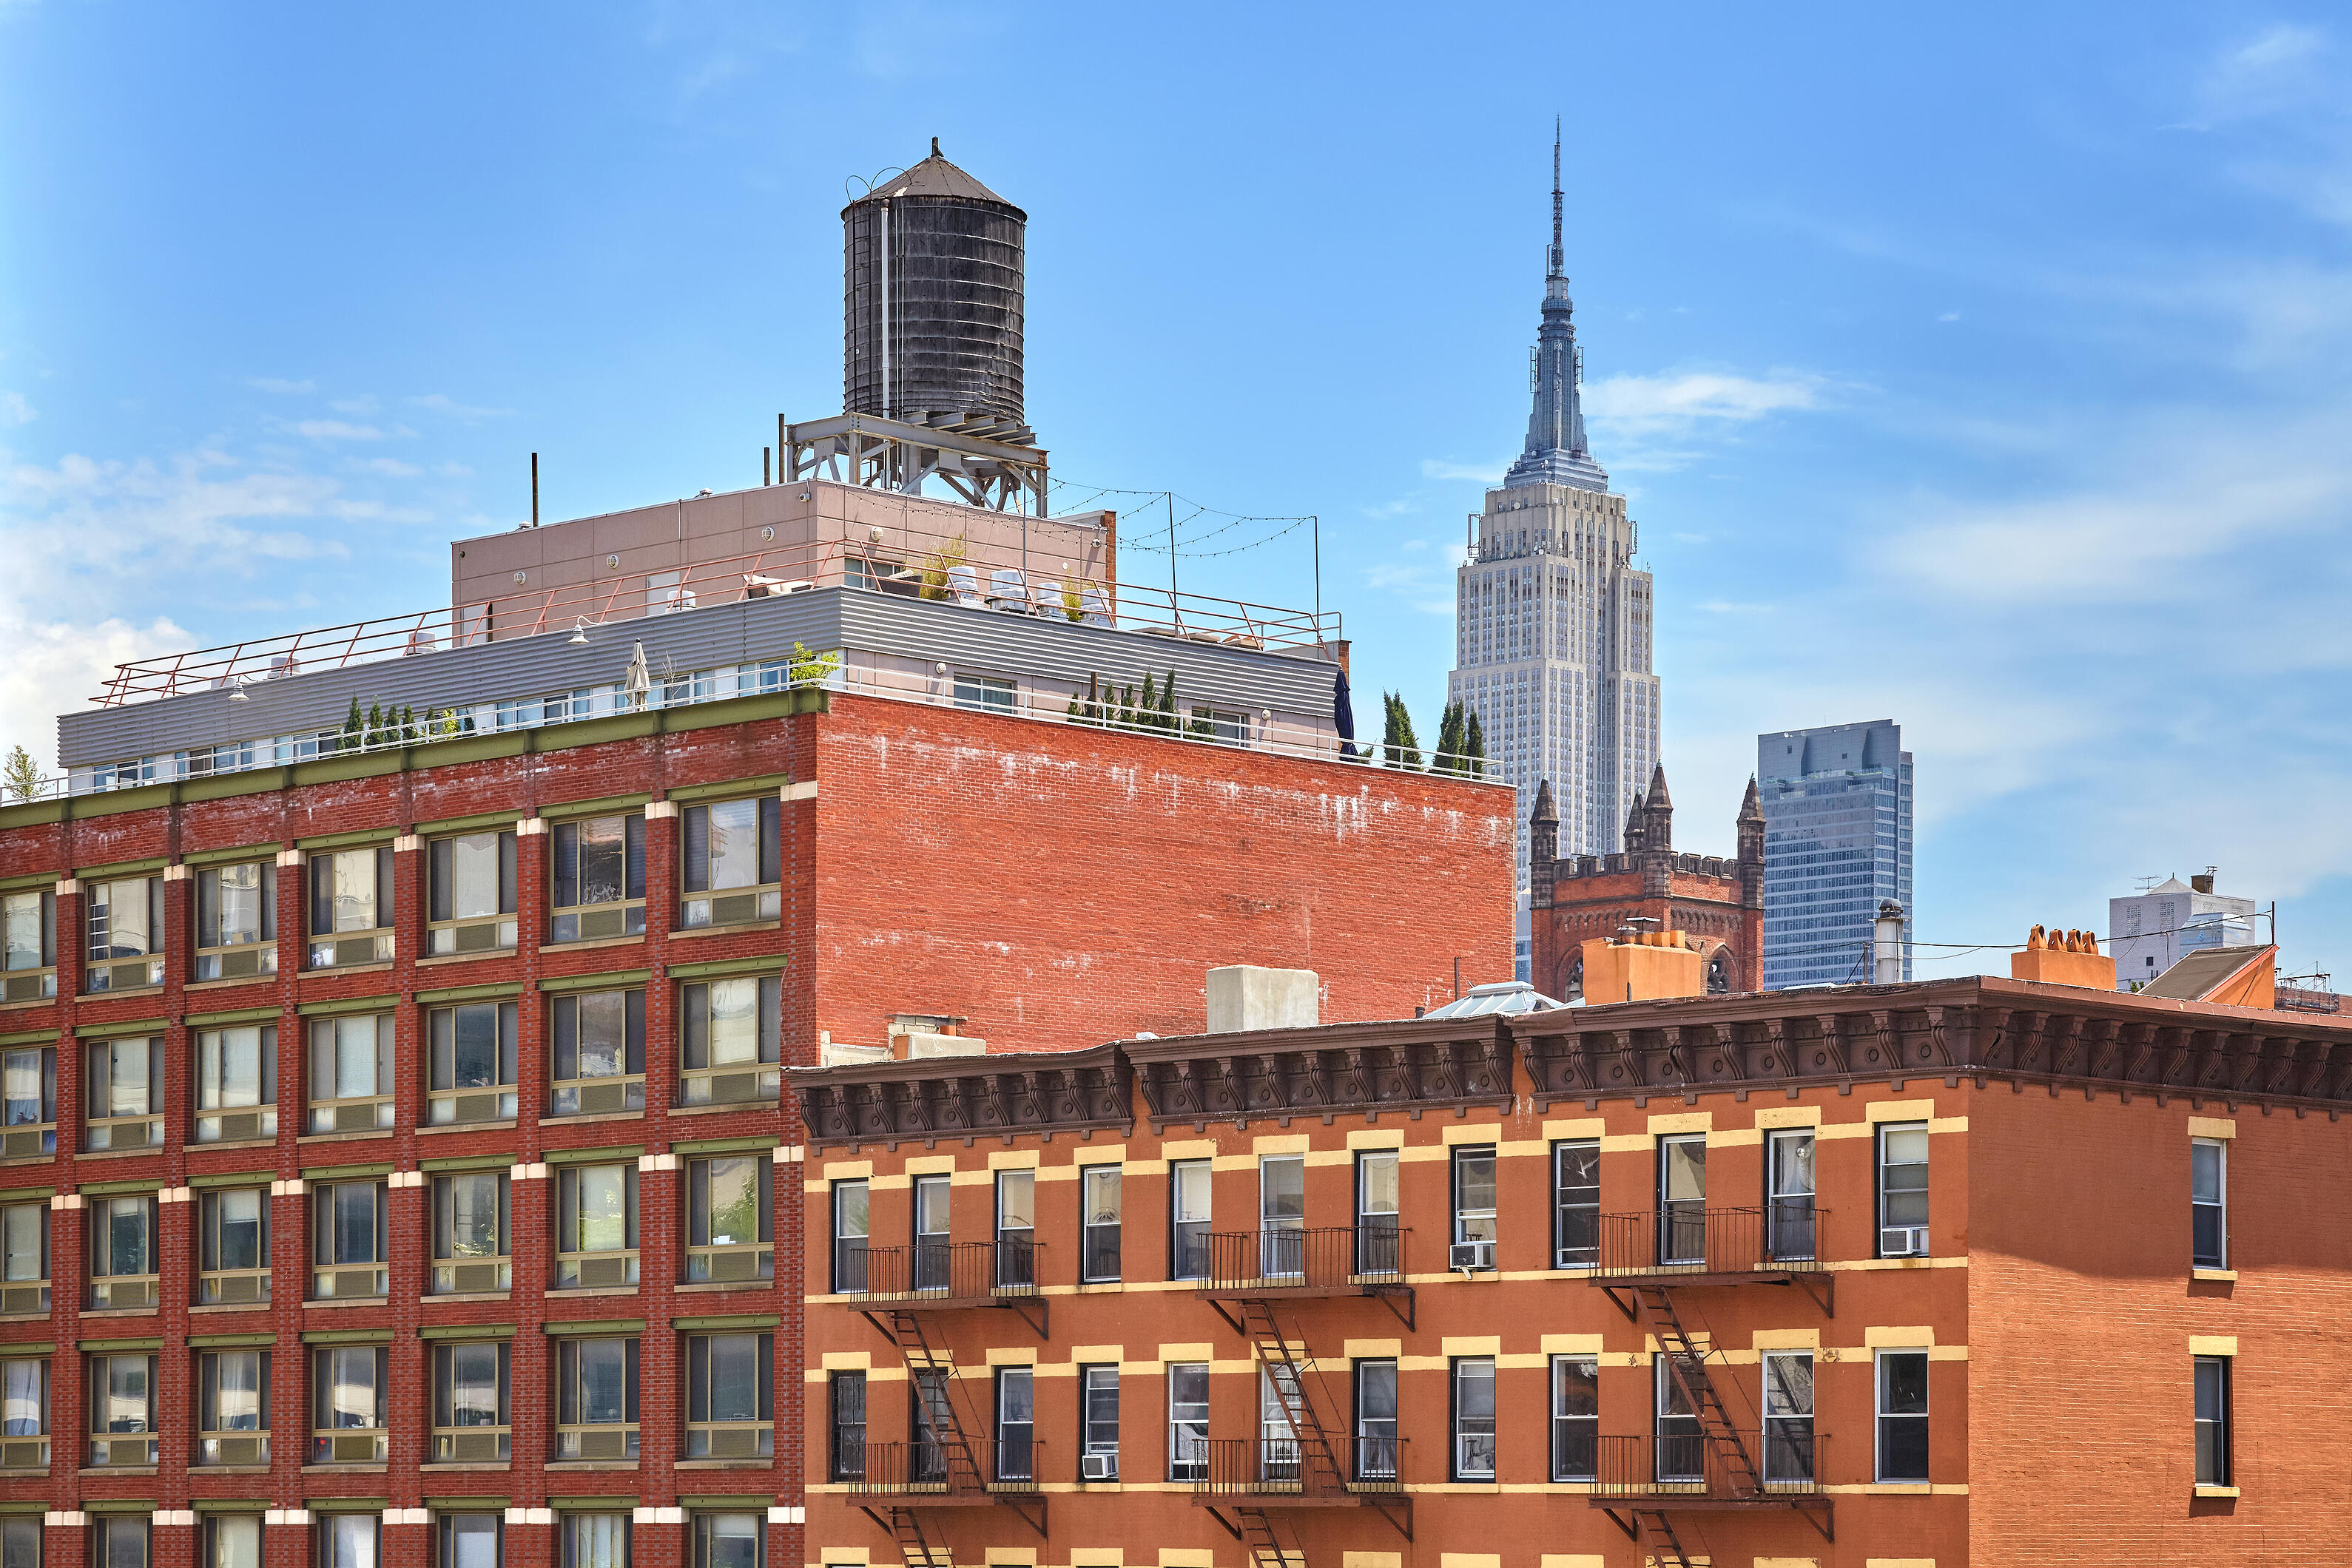 rooftop-water-tank-on-a-new-york-apartment-buildin-PKMUBCV